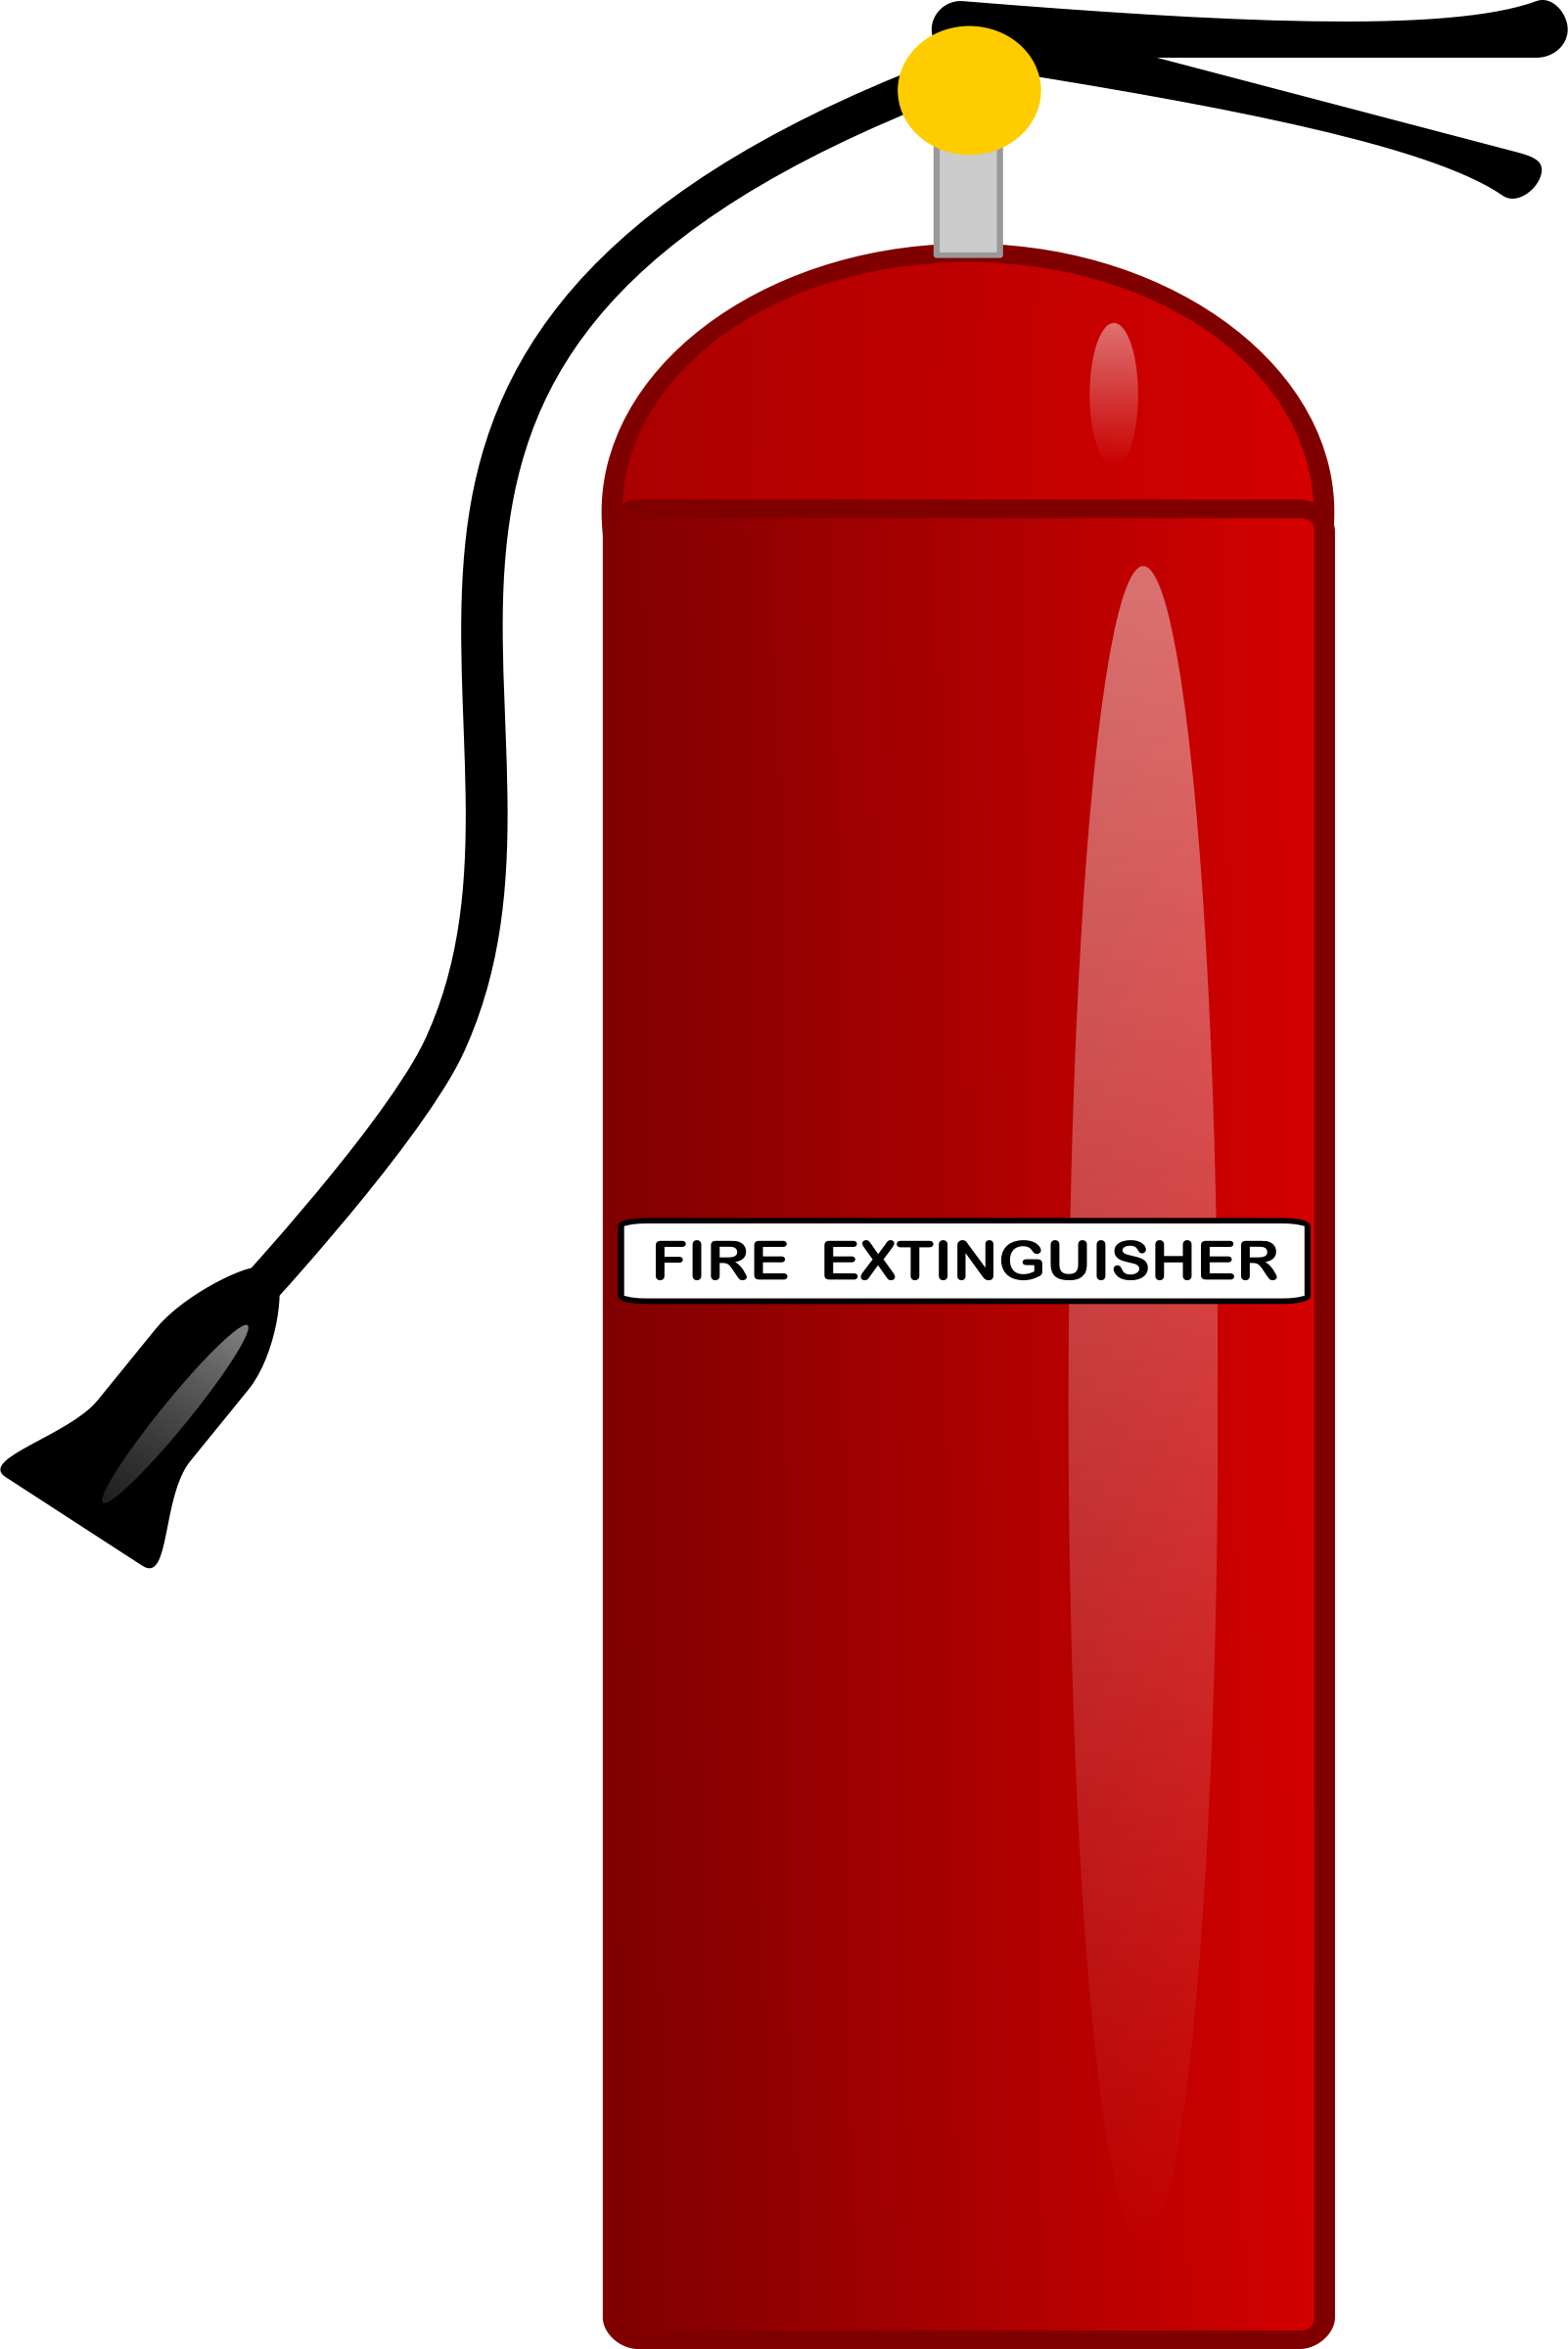 Fire Extinguisher by Arvin61r58